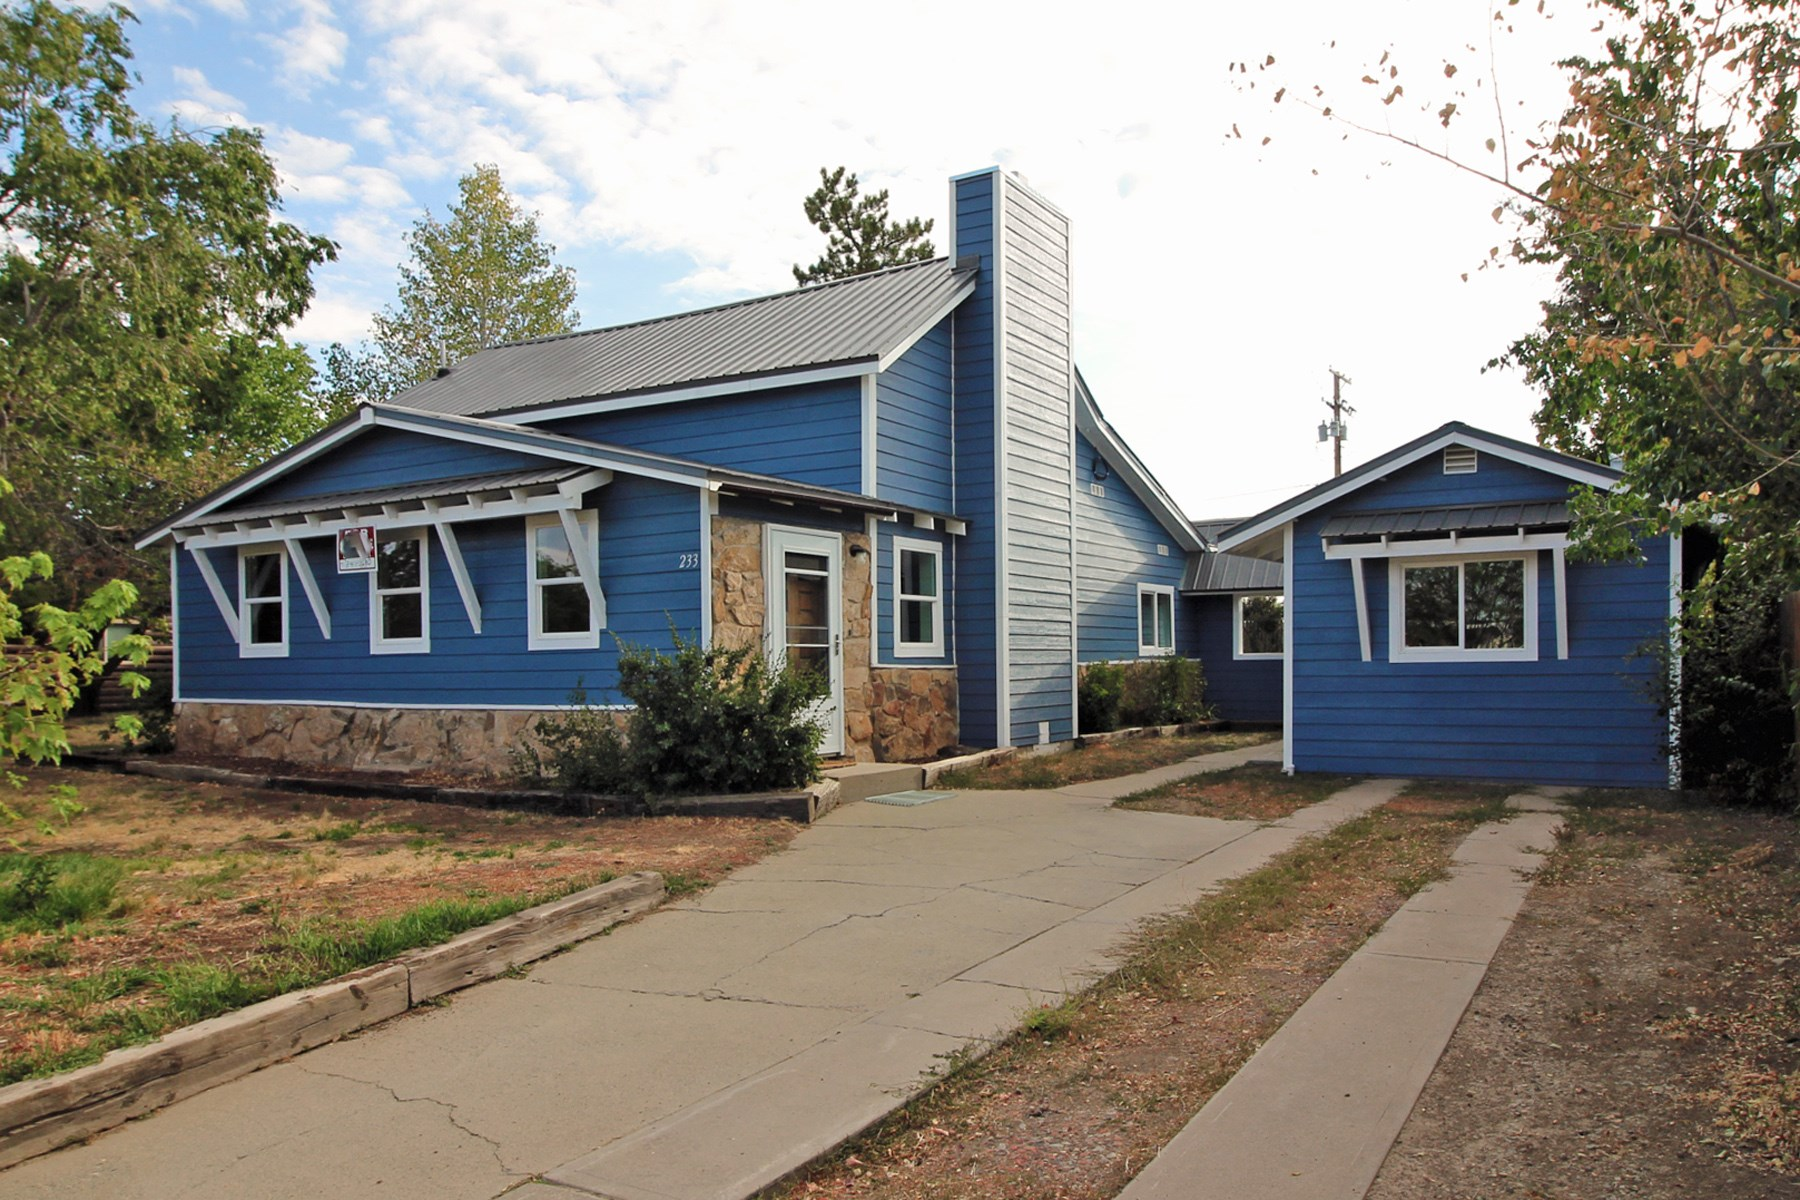 Immaculate and freshly remodeled home in Mancos, Colorado